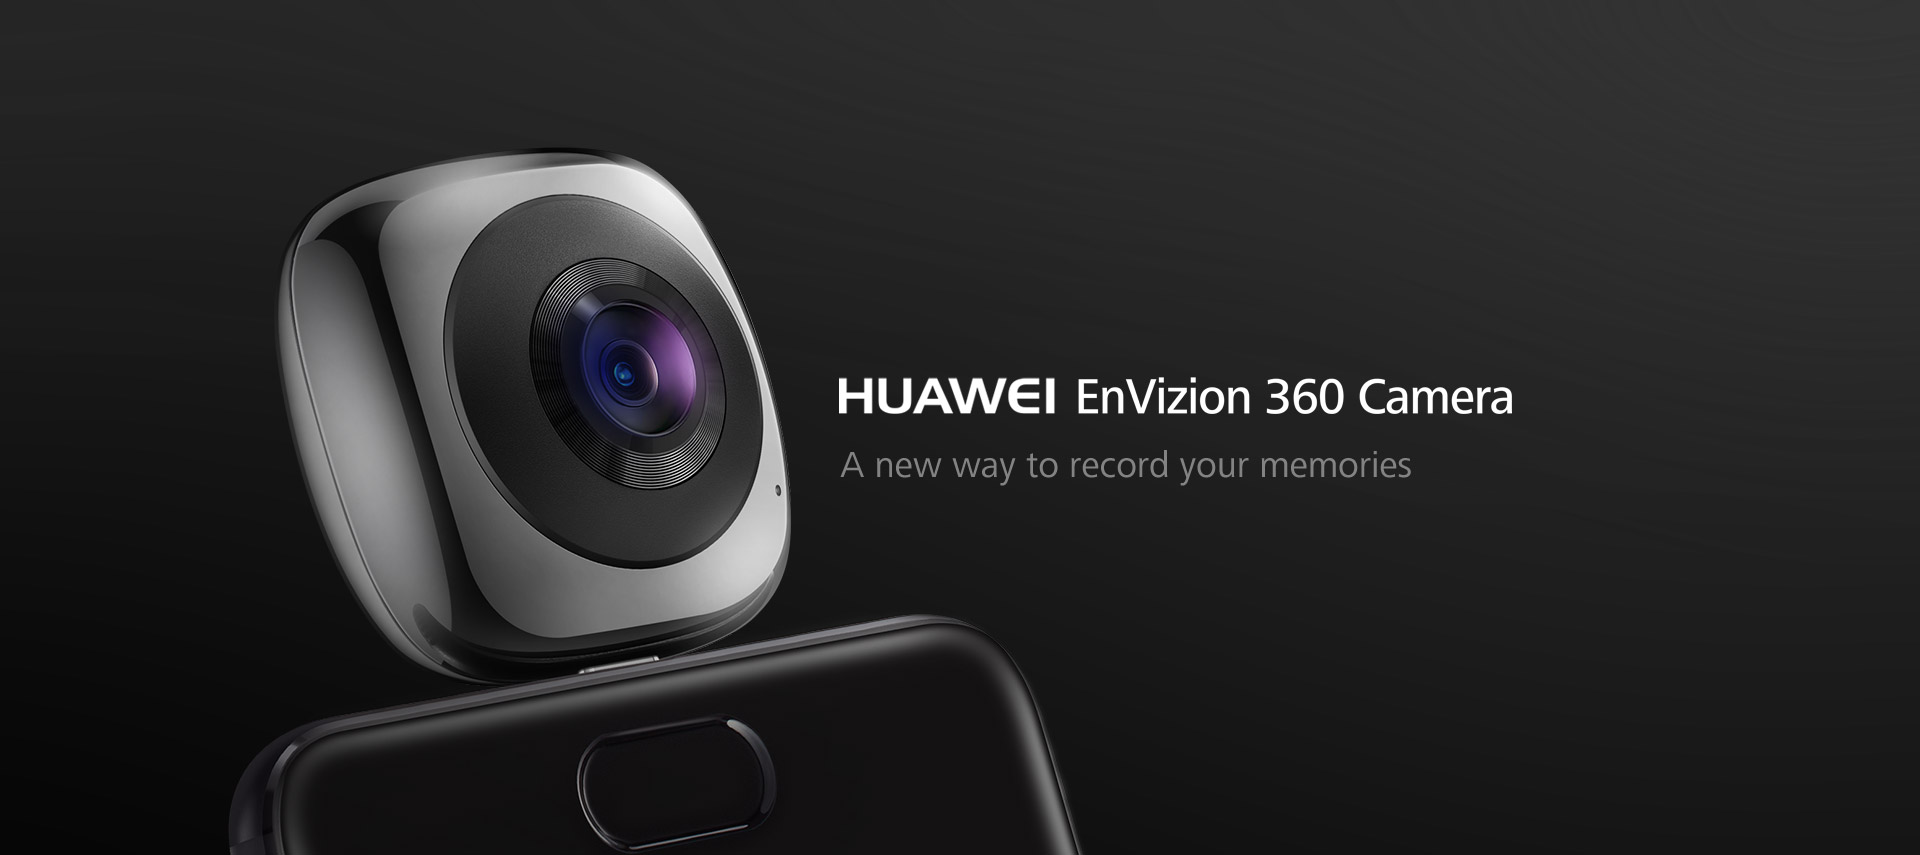 HUAWEI EnVizion 360 Camera, VR, fish eye, 360 panoramic camera